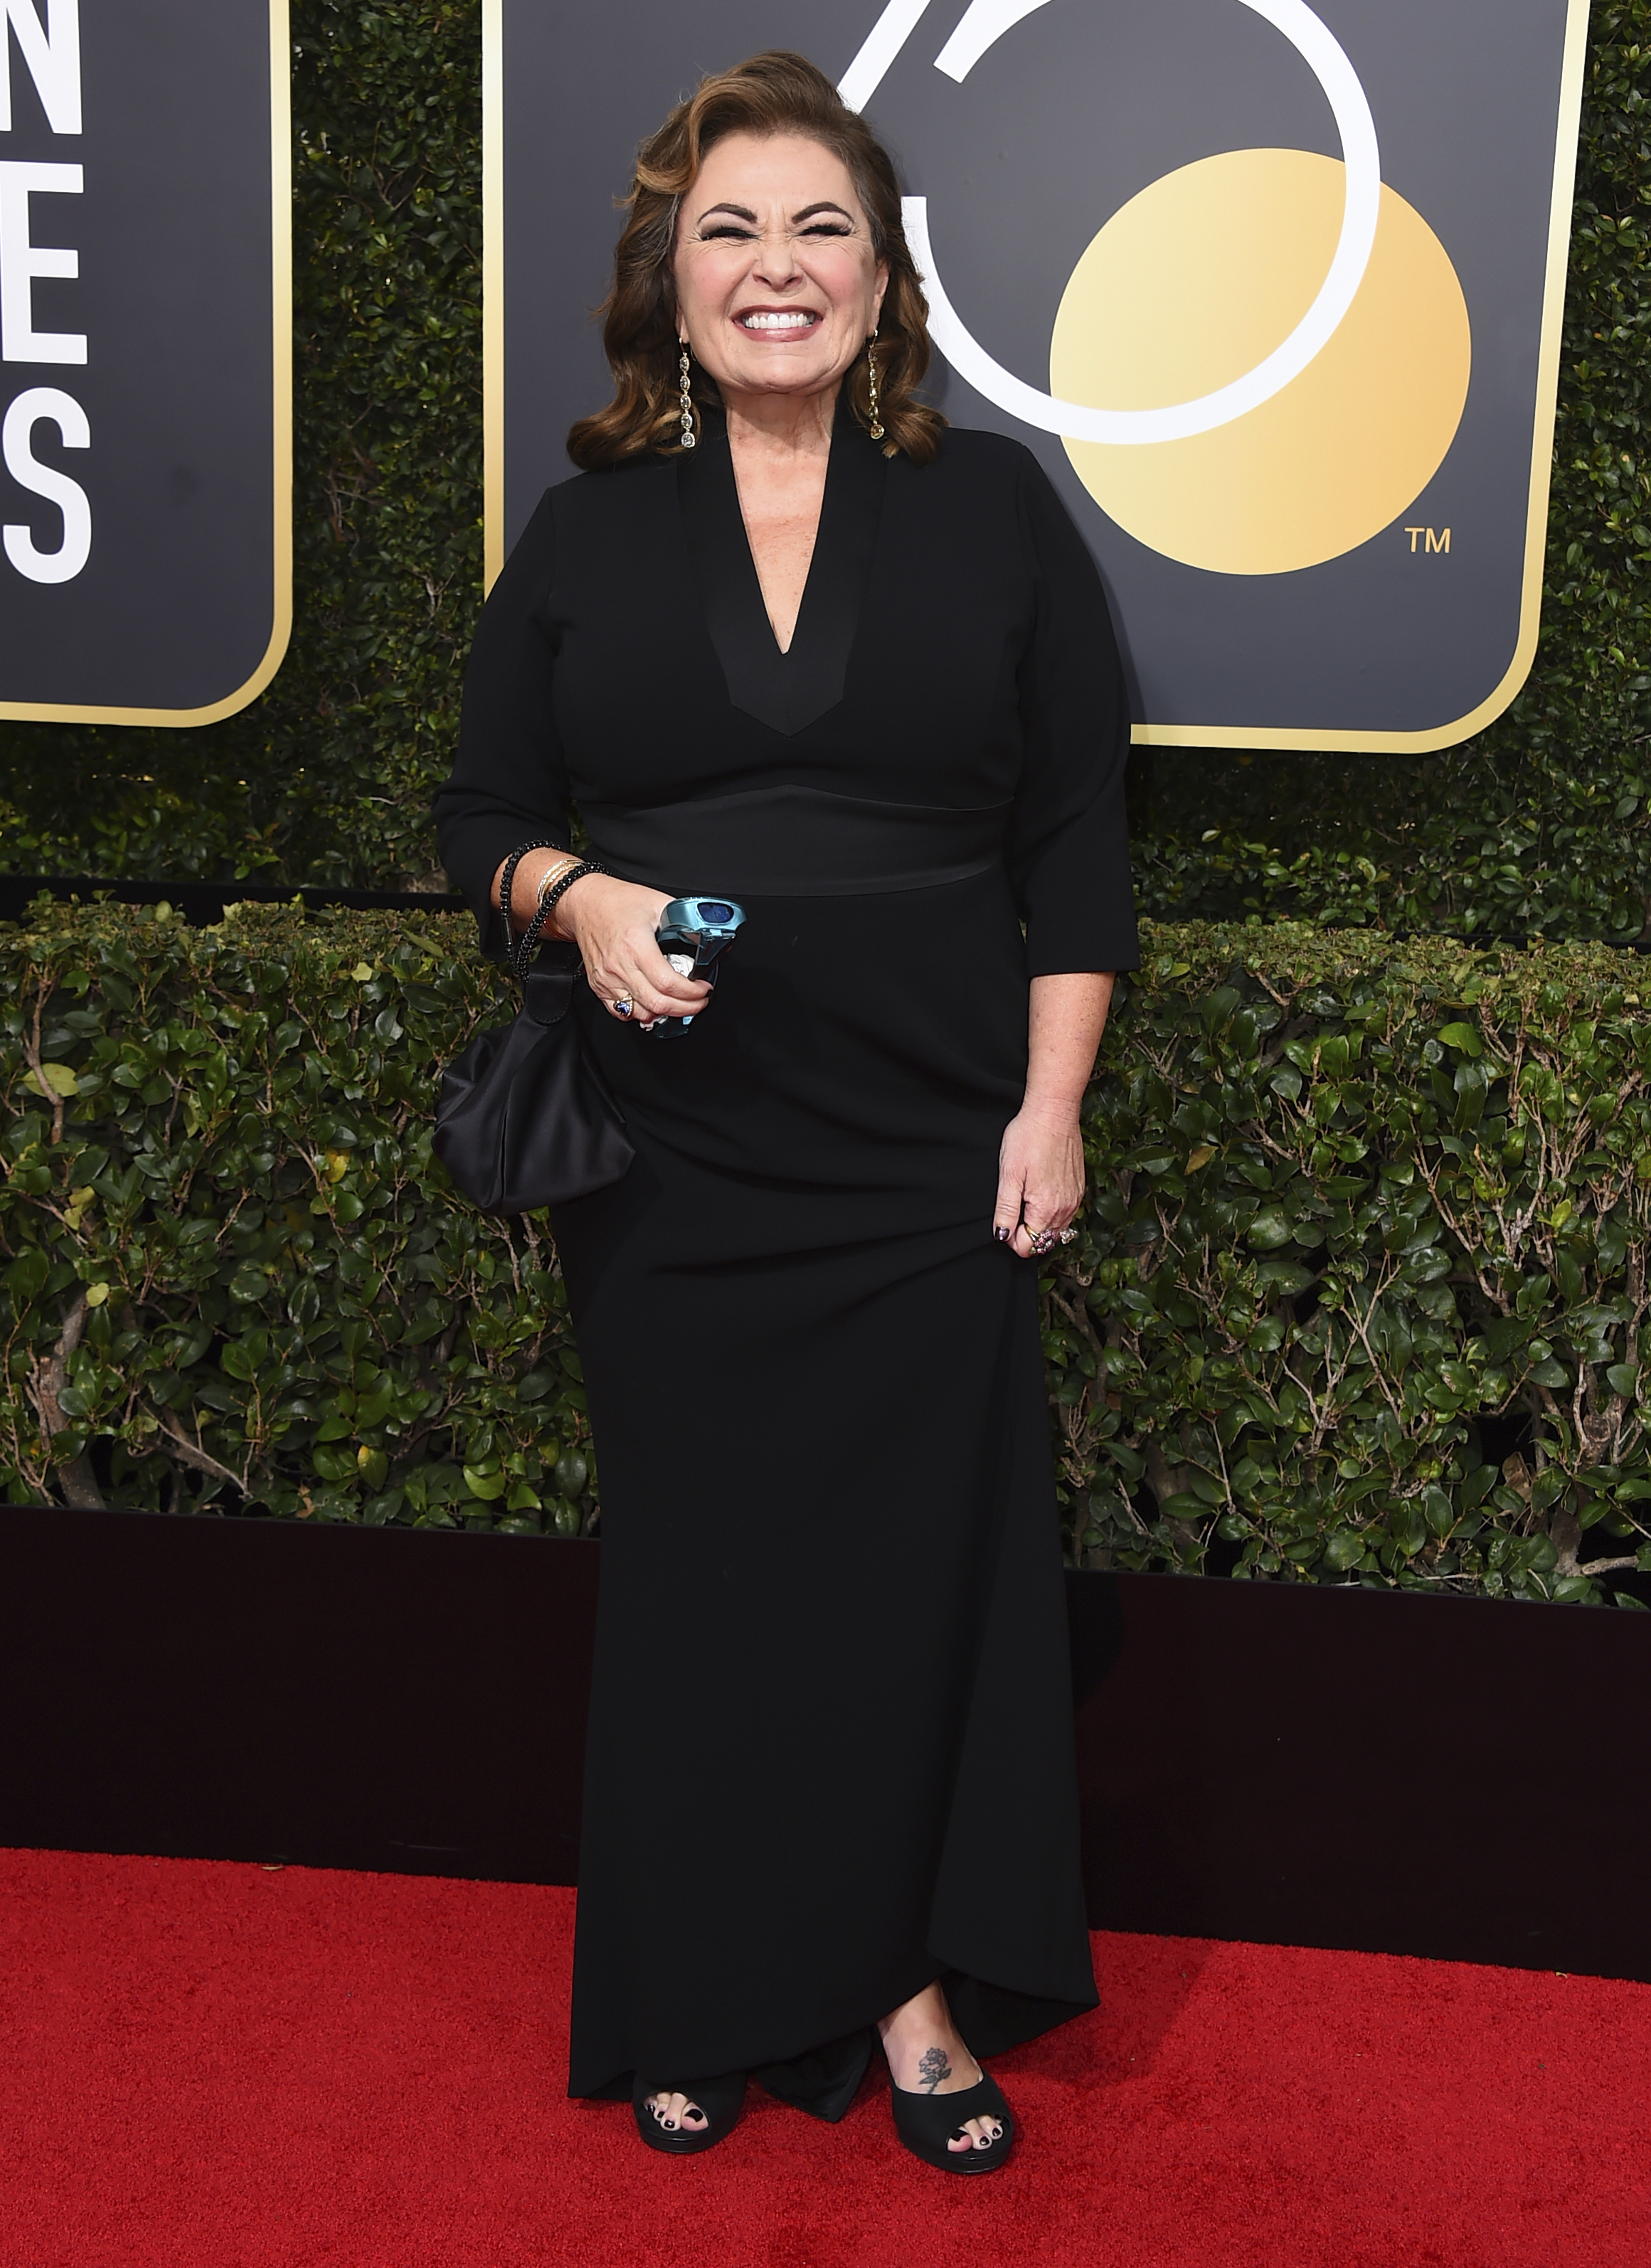 <div class='meta'><div class='origin-logo' data-origin='AP'></div><span class='caption-text' data-credit='Jordan Strauss/Invision/AP'>Roseanne Barr arrives at the 75th annual Golden Globe Awards at the Beverly Hilton Hotel on Sunday, Jan. 7, 2018, in Beverly Hills, Calif.</span></div>